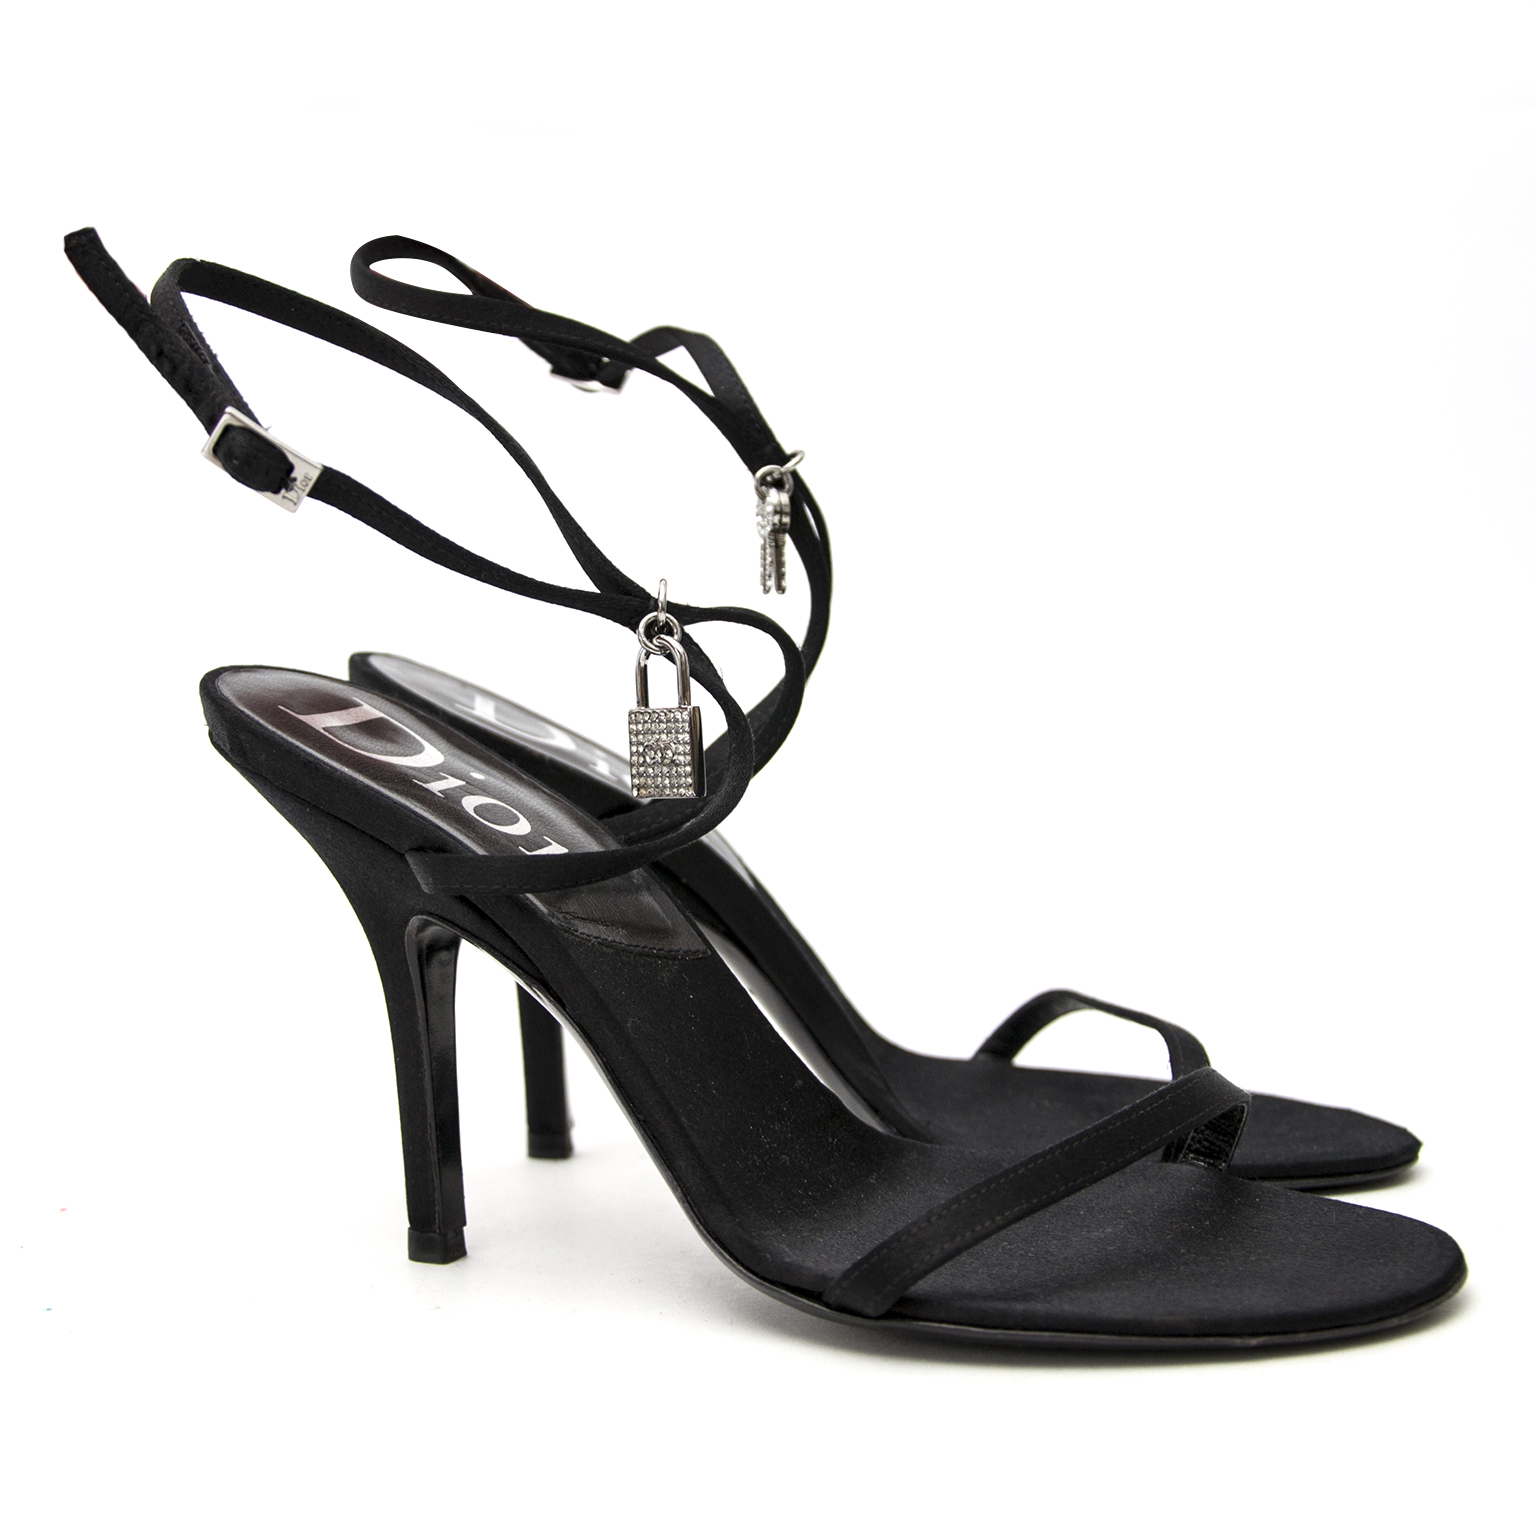 Looking for Dior Black Satin Heels - Size: 36